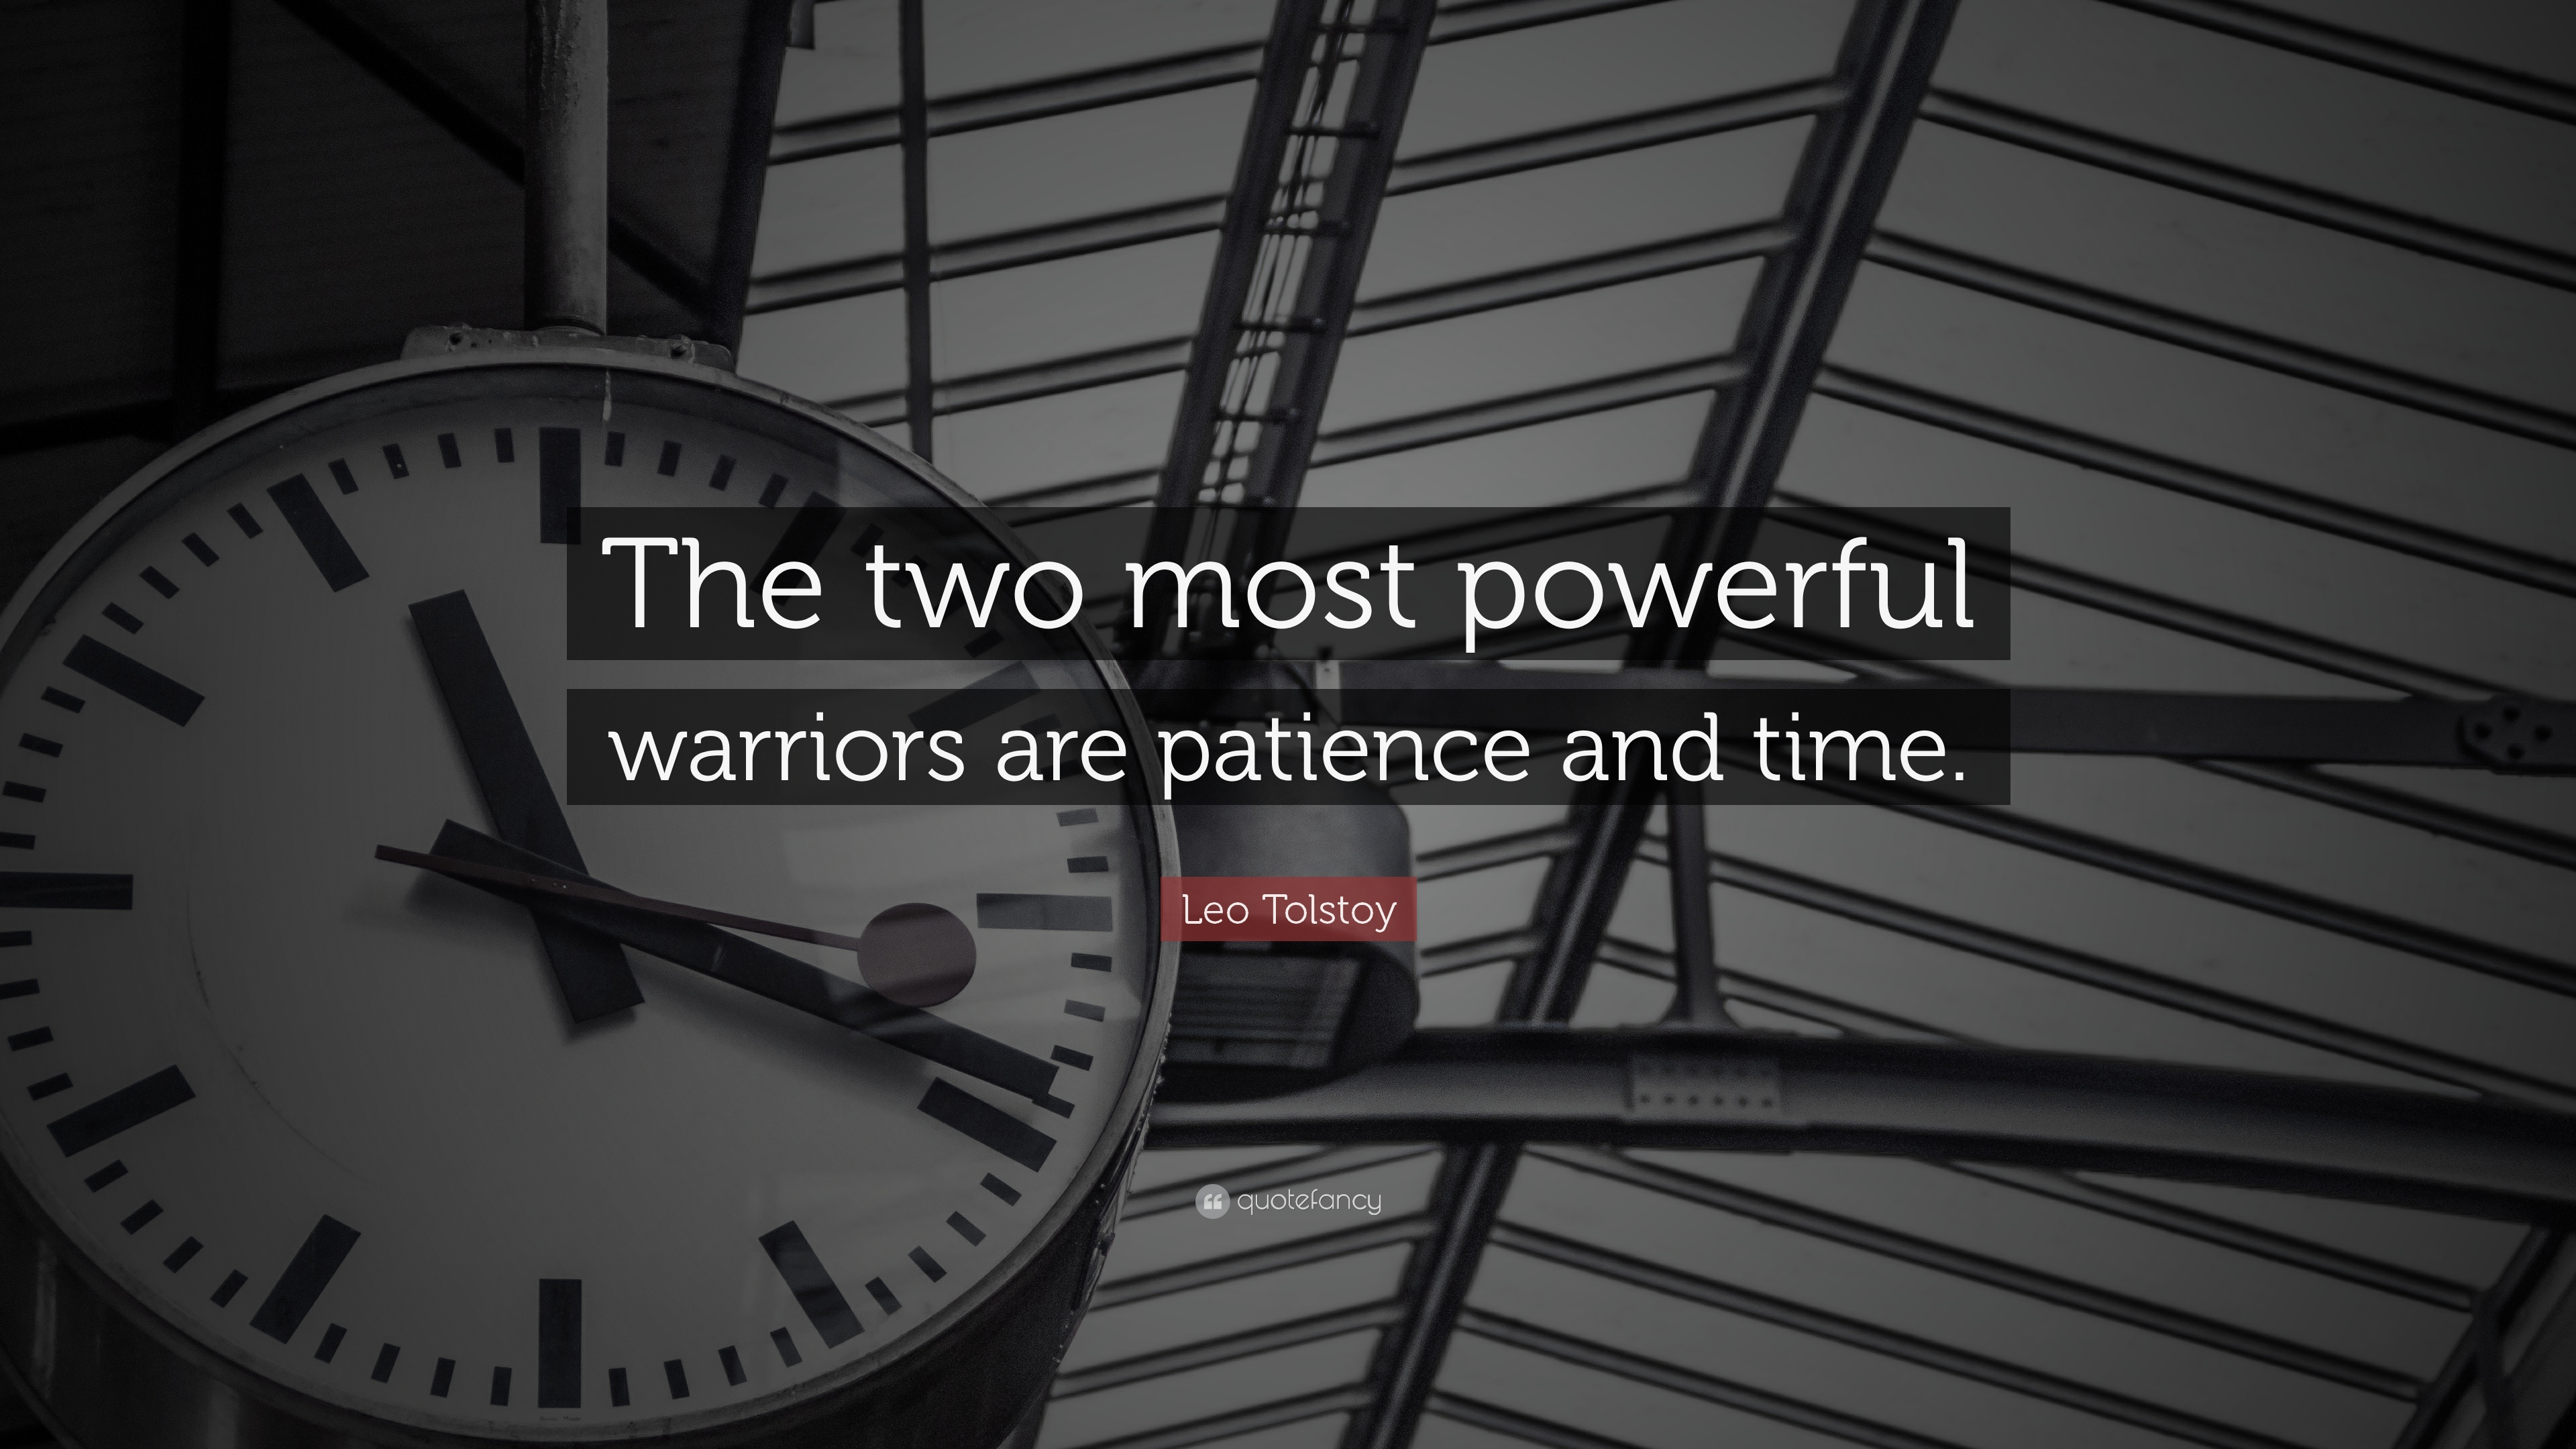 Patience Quotes: U201cThe Two Most Powerful Warriors Are Patience And Time.u201d U2014